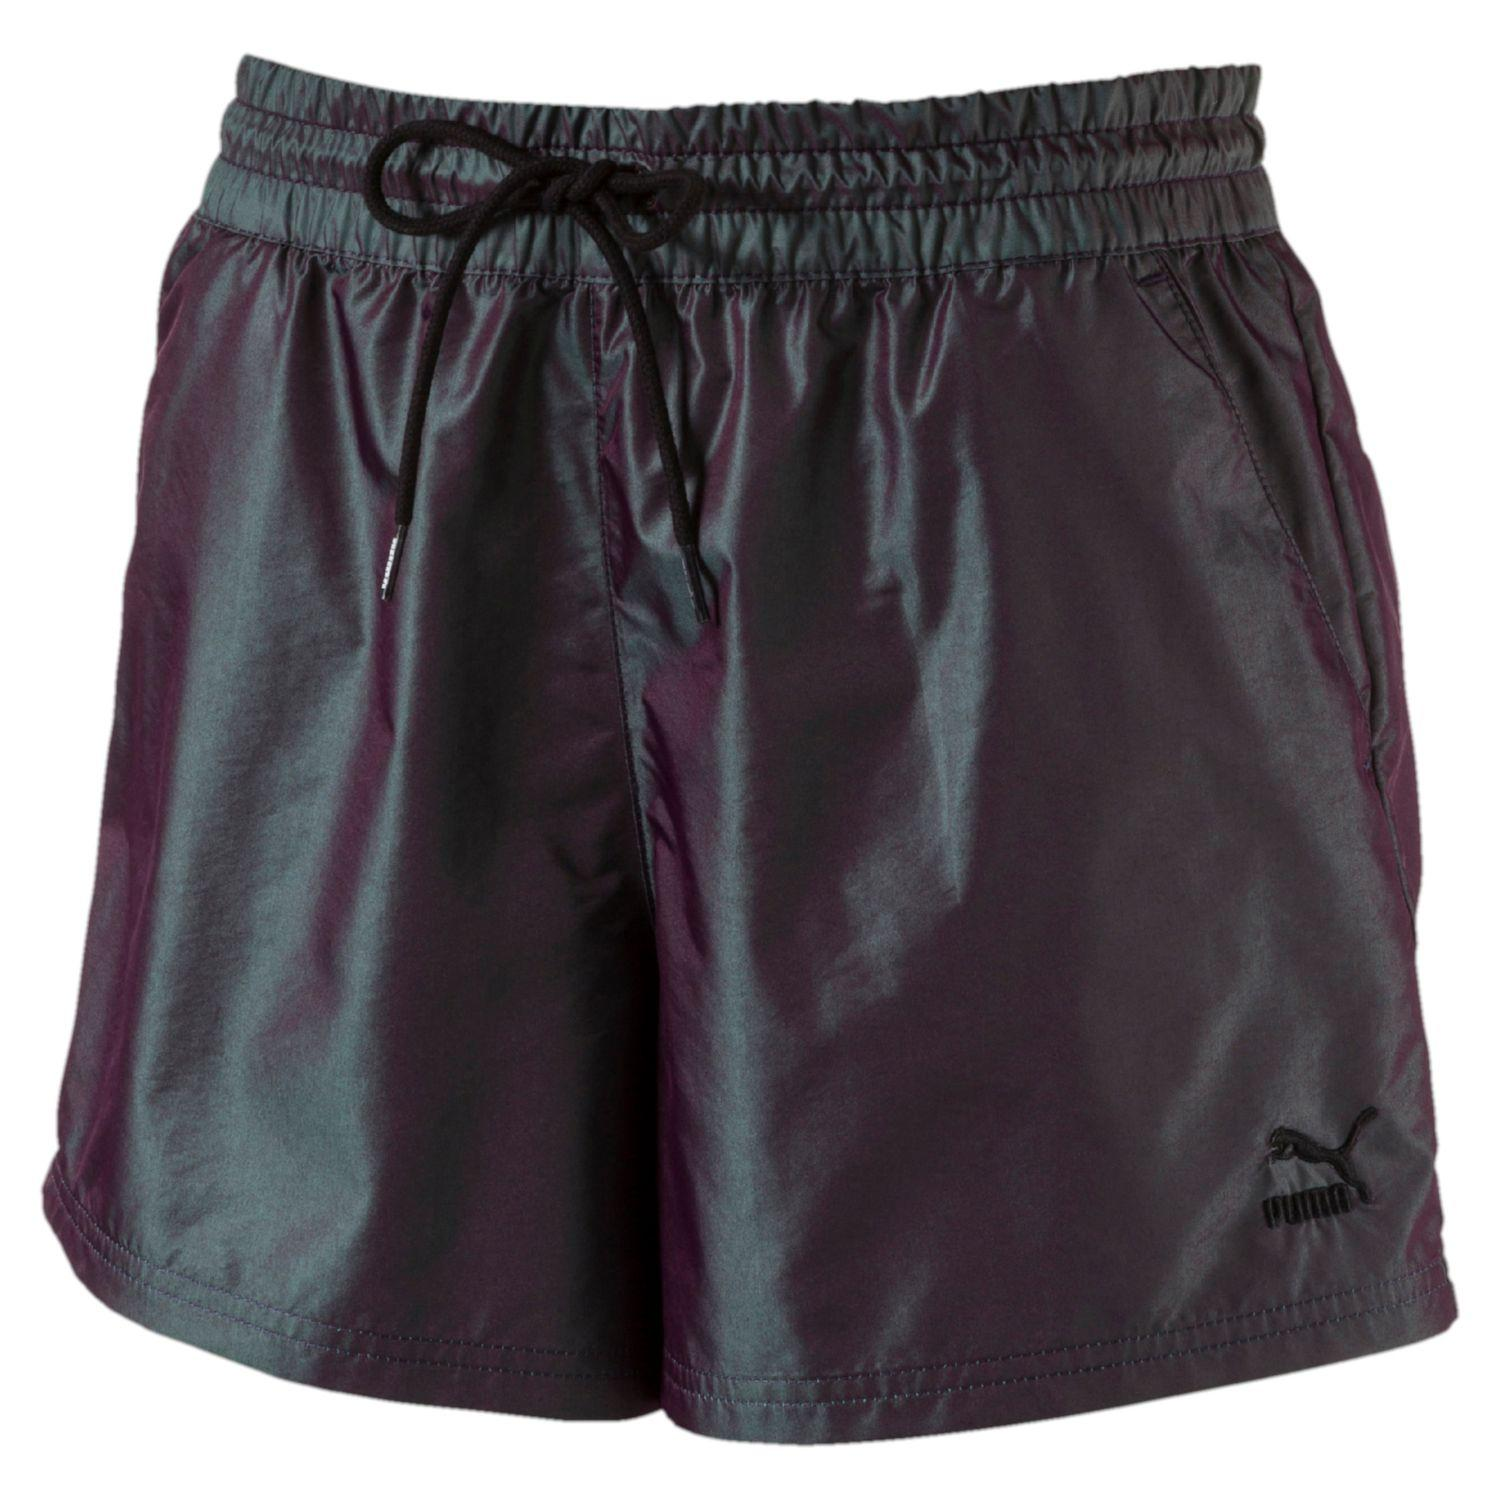 Puma Short Pants Irridescent  Woman